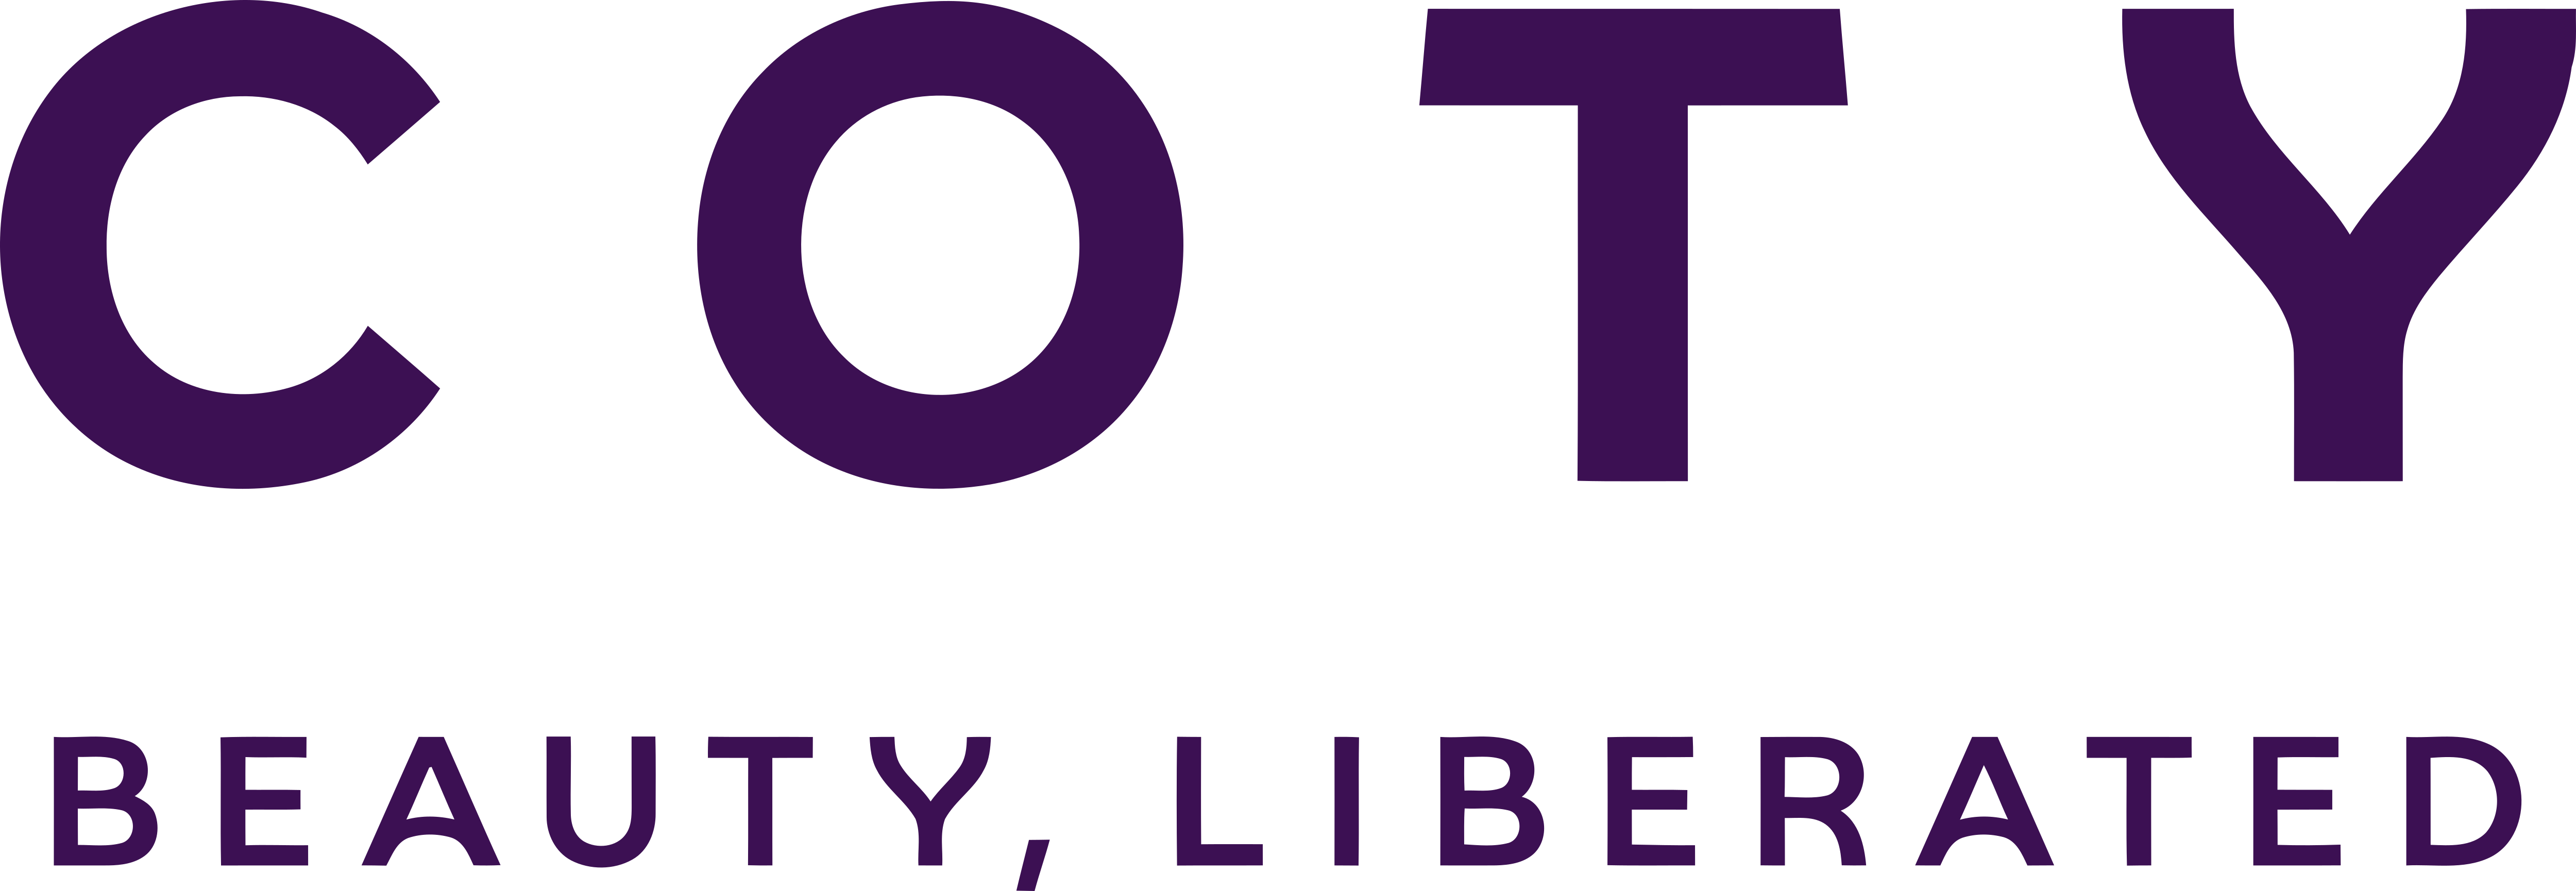 Logo Coty in PNG